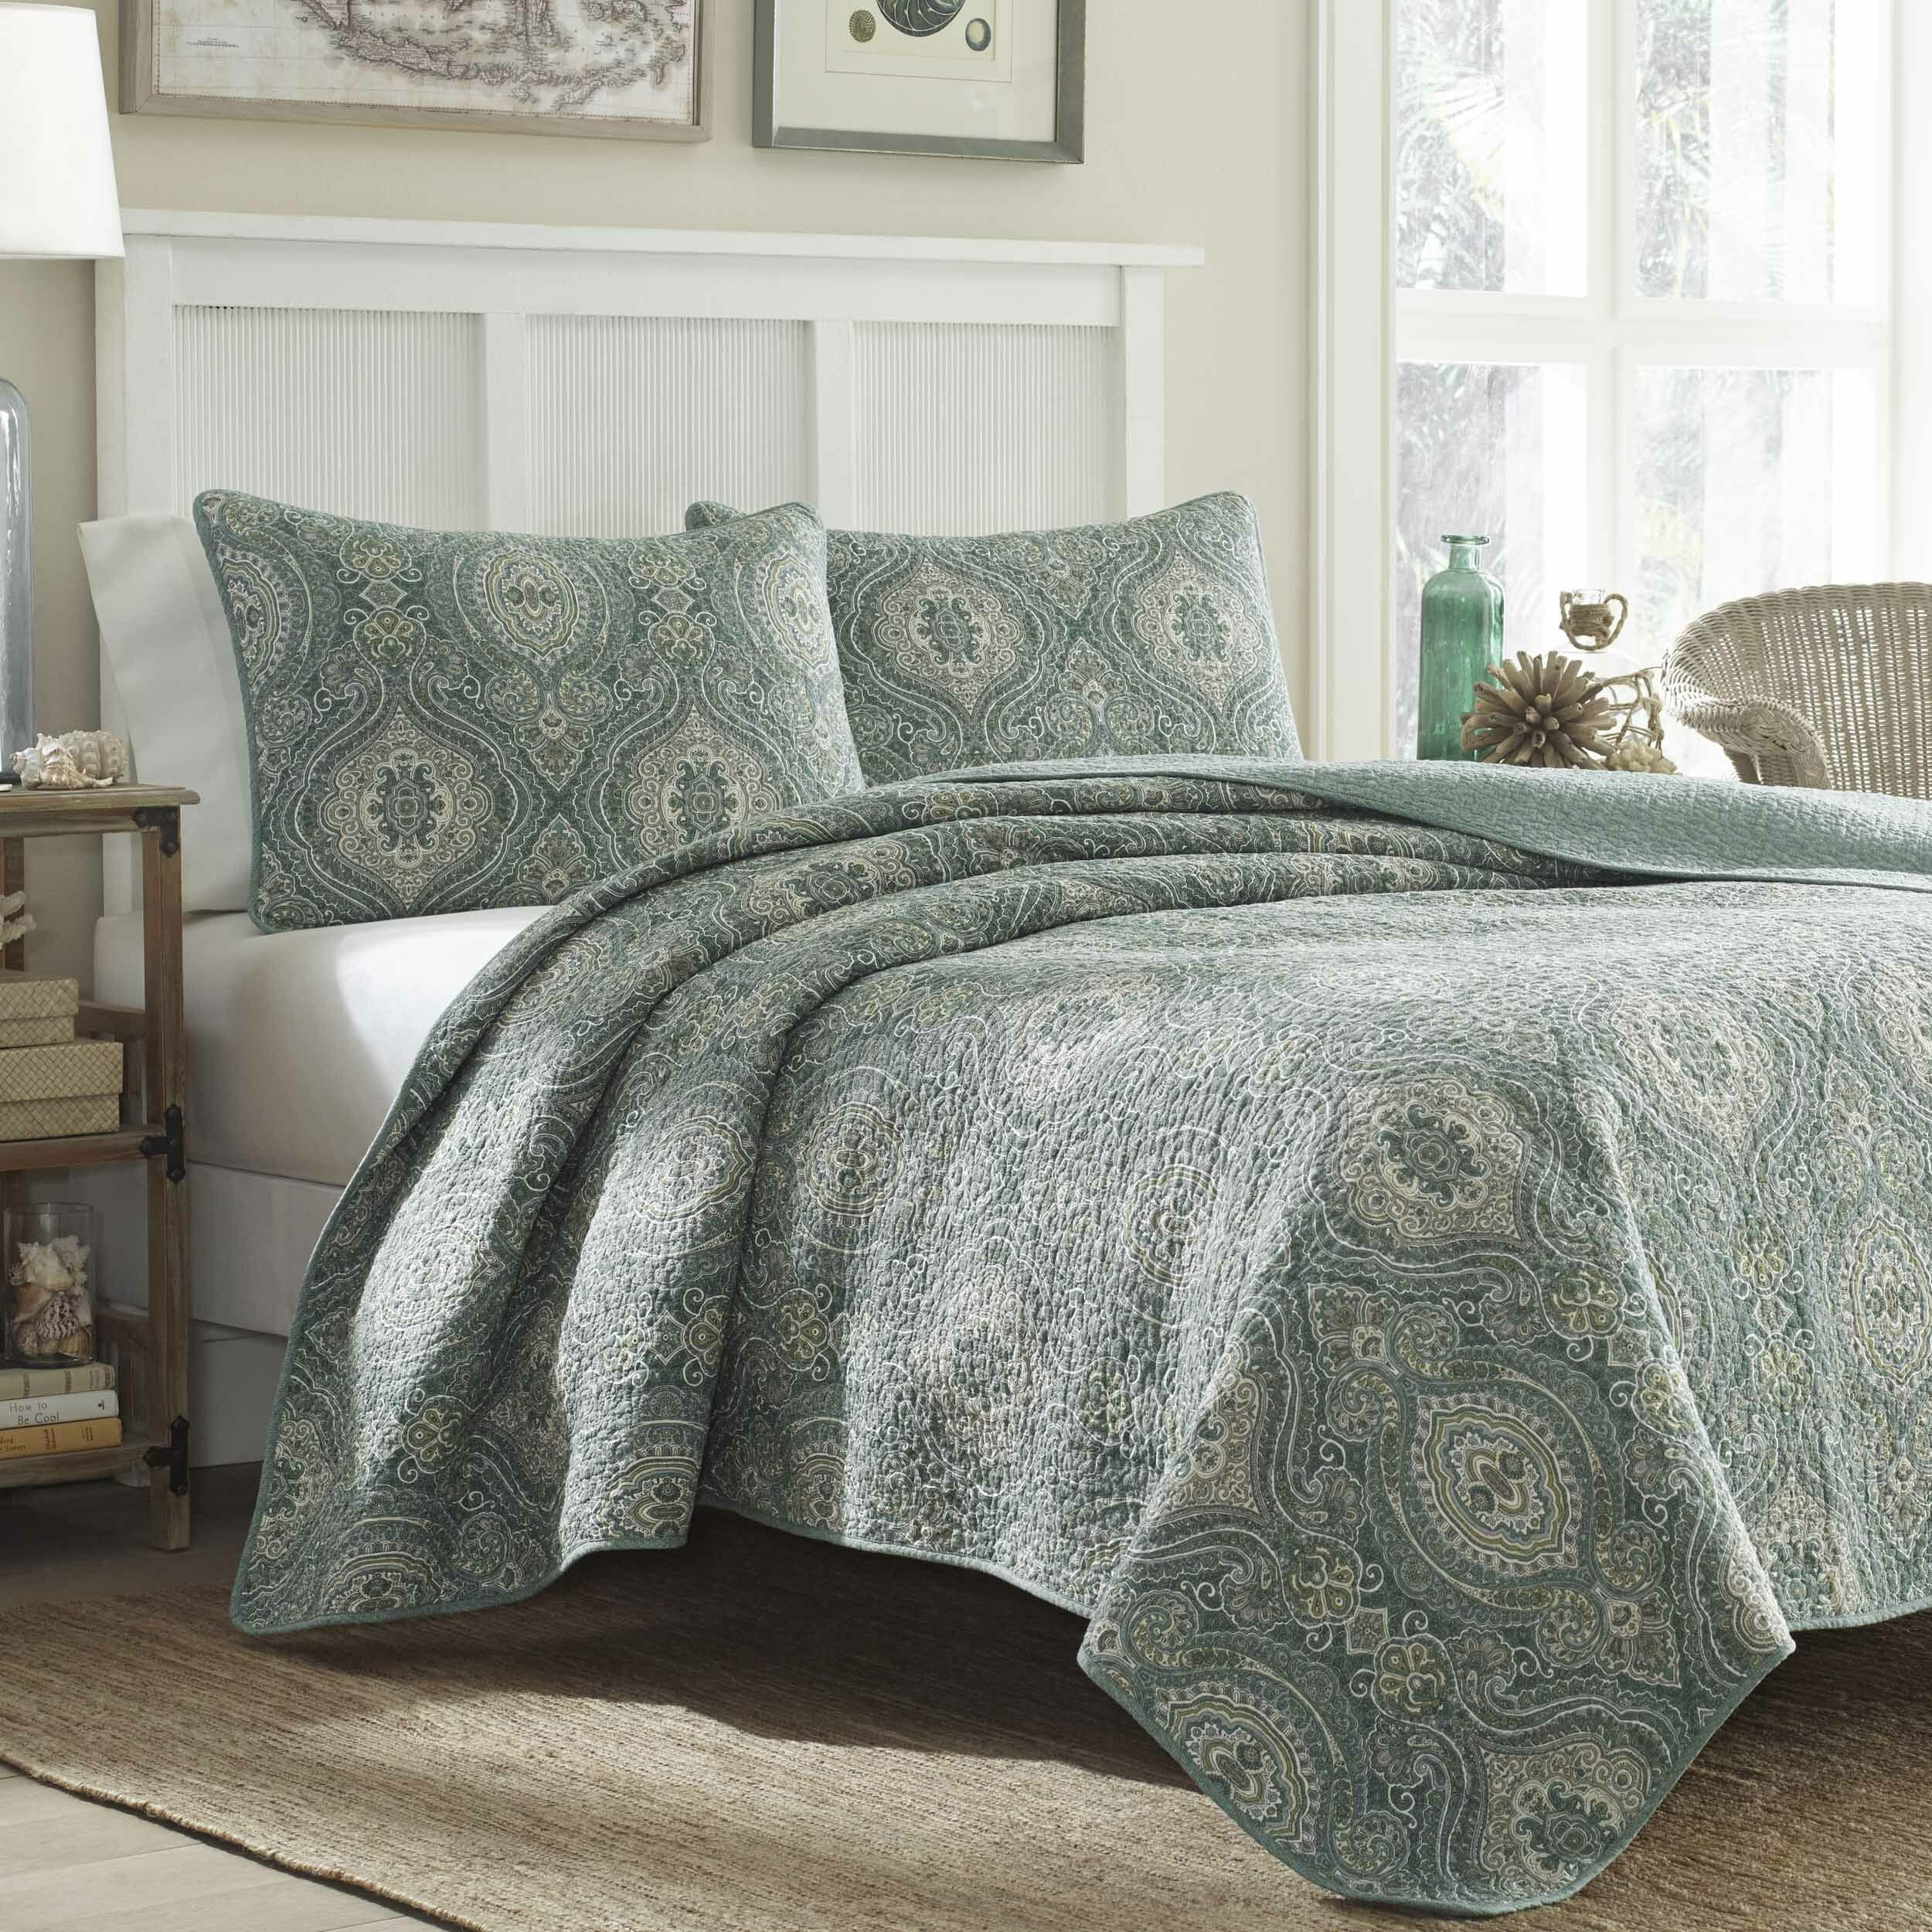 Tommy Bahama Bedding Turtle Cove Lagoon Quilt Set